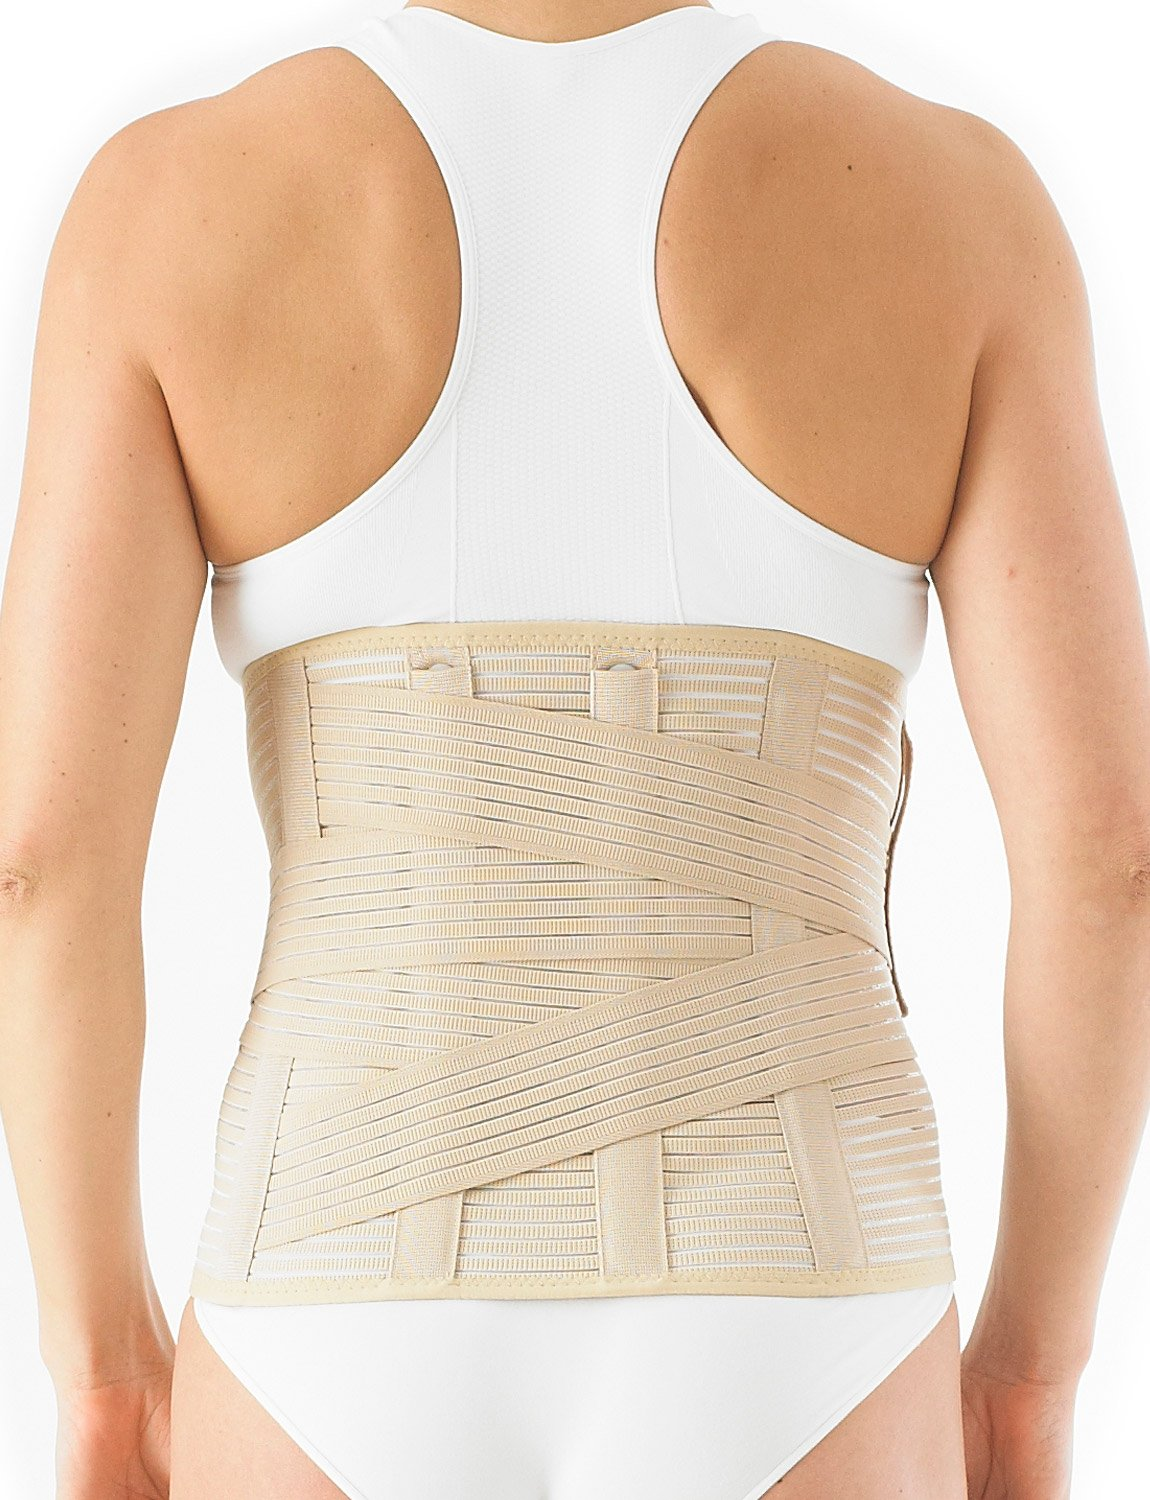 Neo G Lumbarsacral Brace - Support For Lower Back Pain, Mild Lumbago, Injured Back, Mild Disc Herniation, Recovery, Rehabilitation - Adjustable Compression - Class 1 Medical Device - Medium - Beige